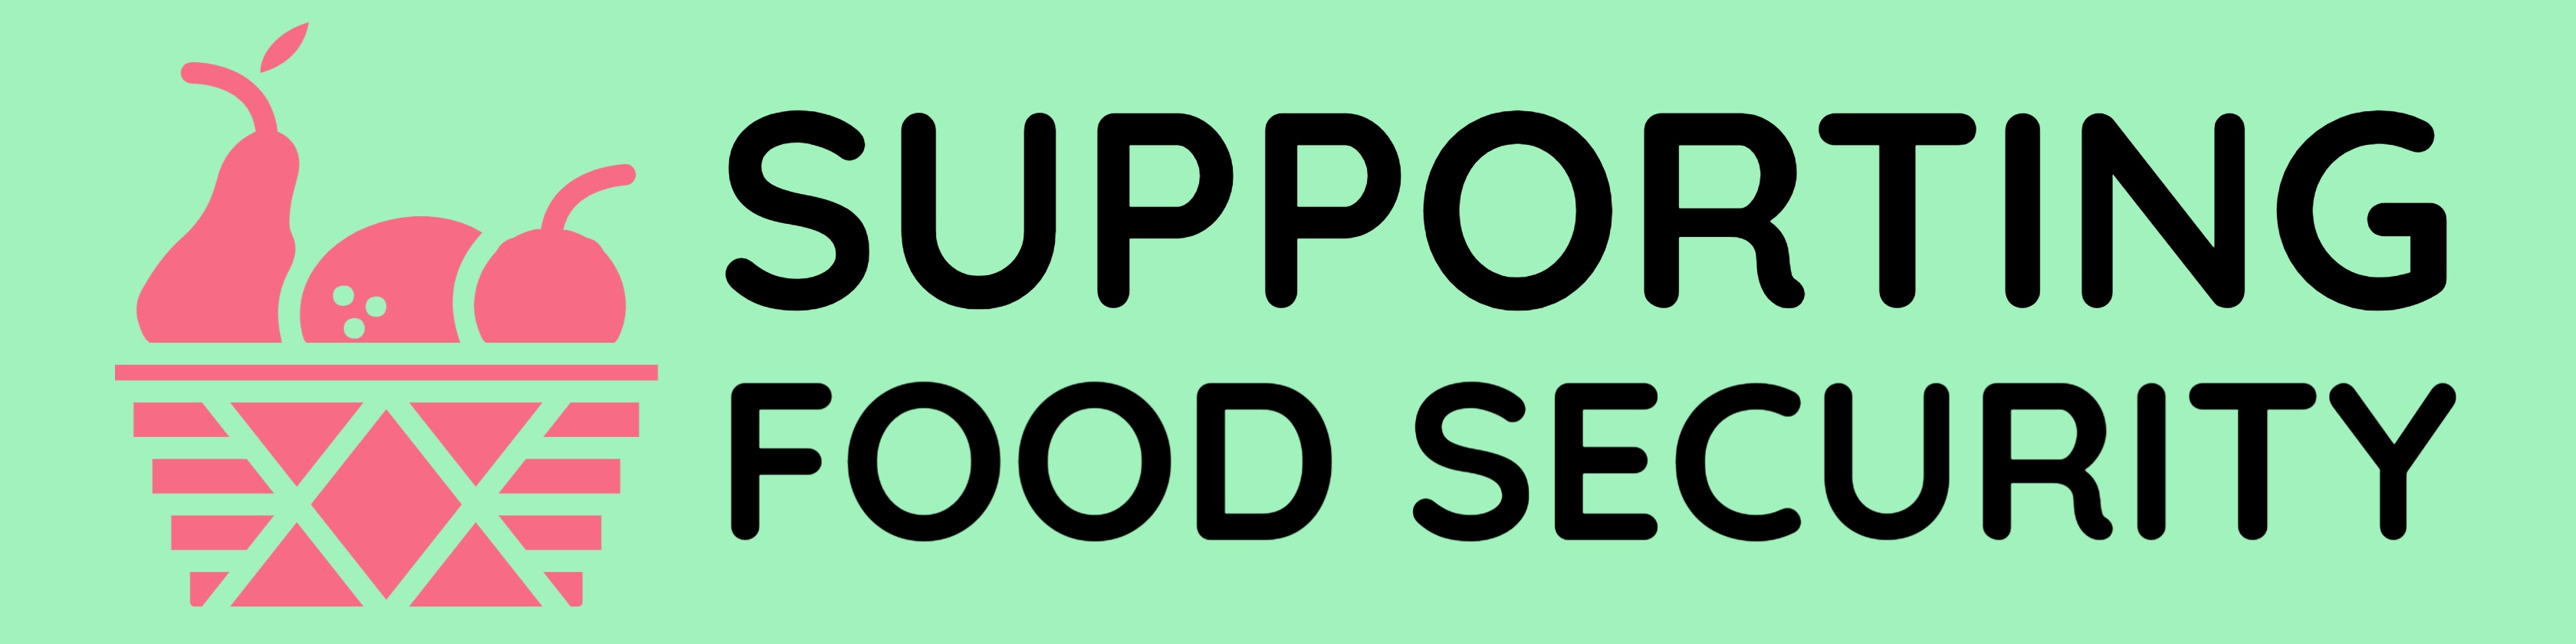 Supporting Food Security